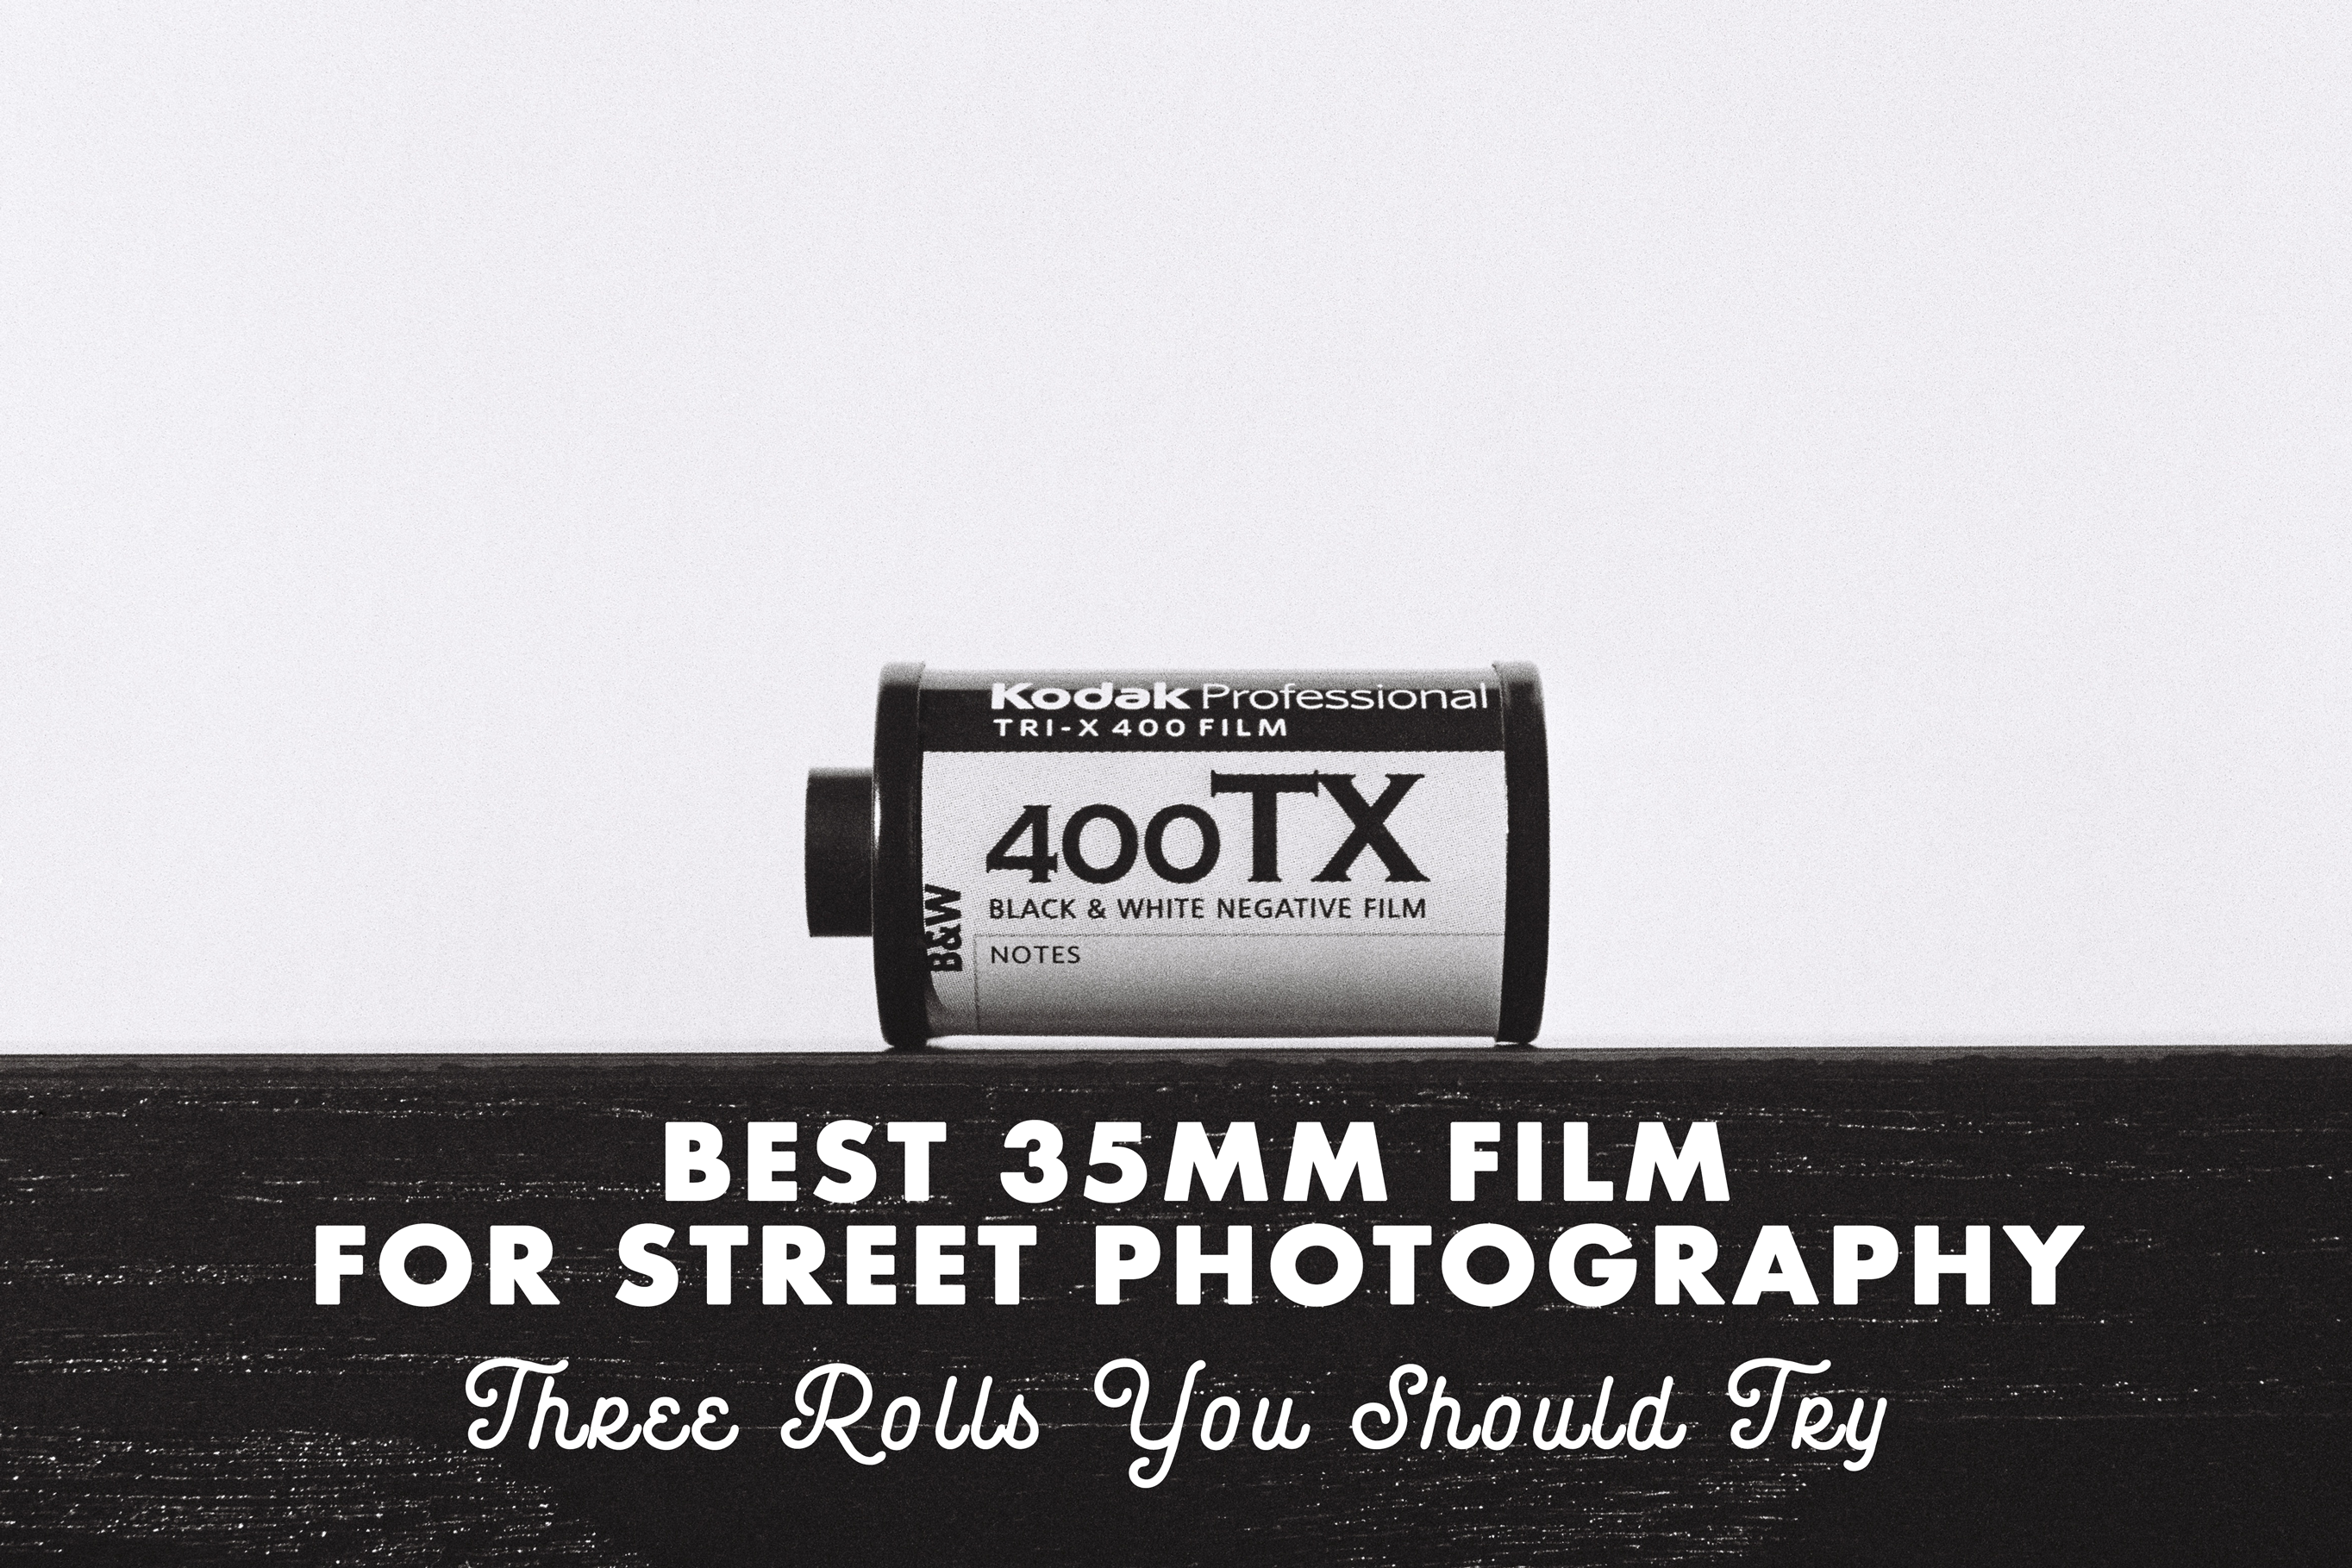 Best 35mm film for street photography i share 3 of my favourites and the settings i use